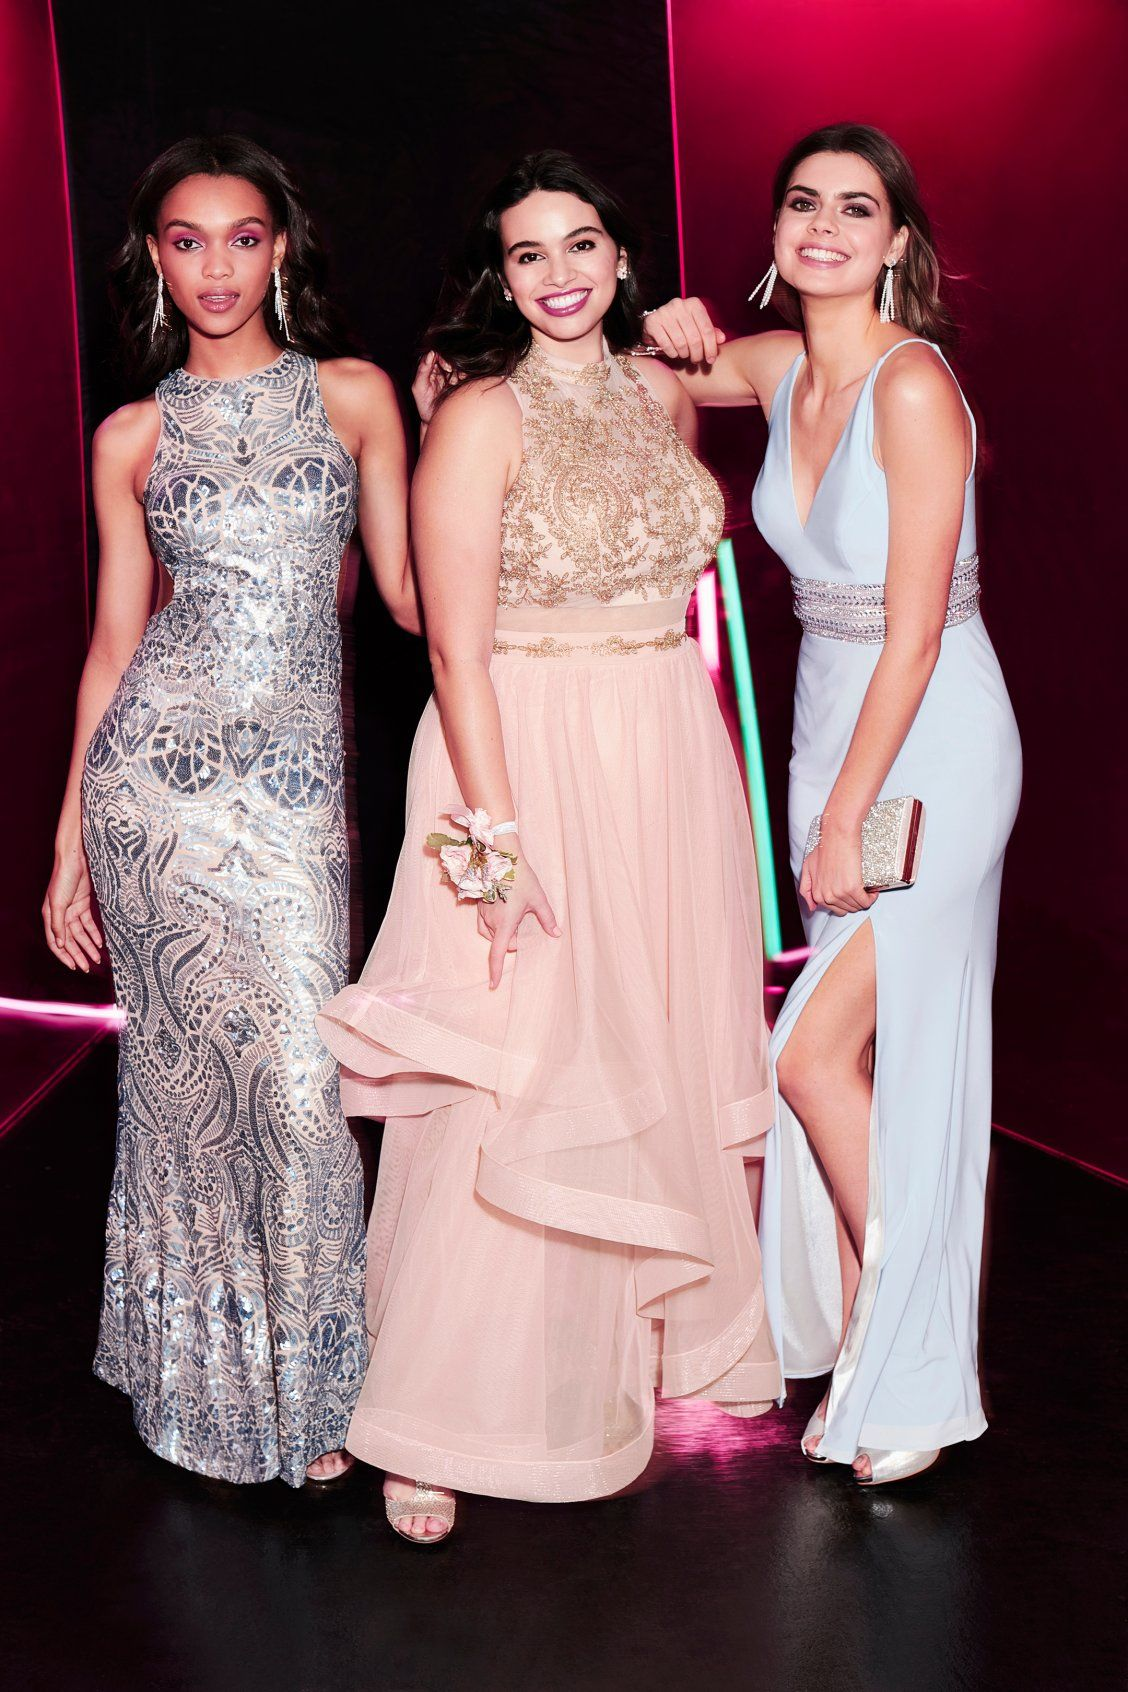 Claim your prom dress! These prom dresses make a statement with ...